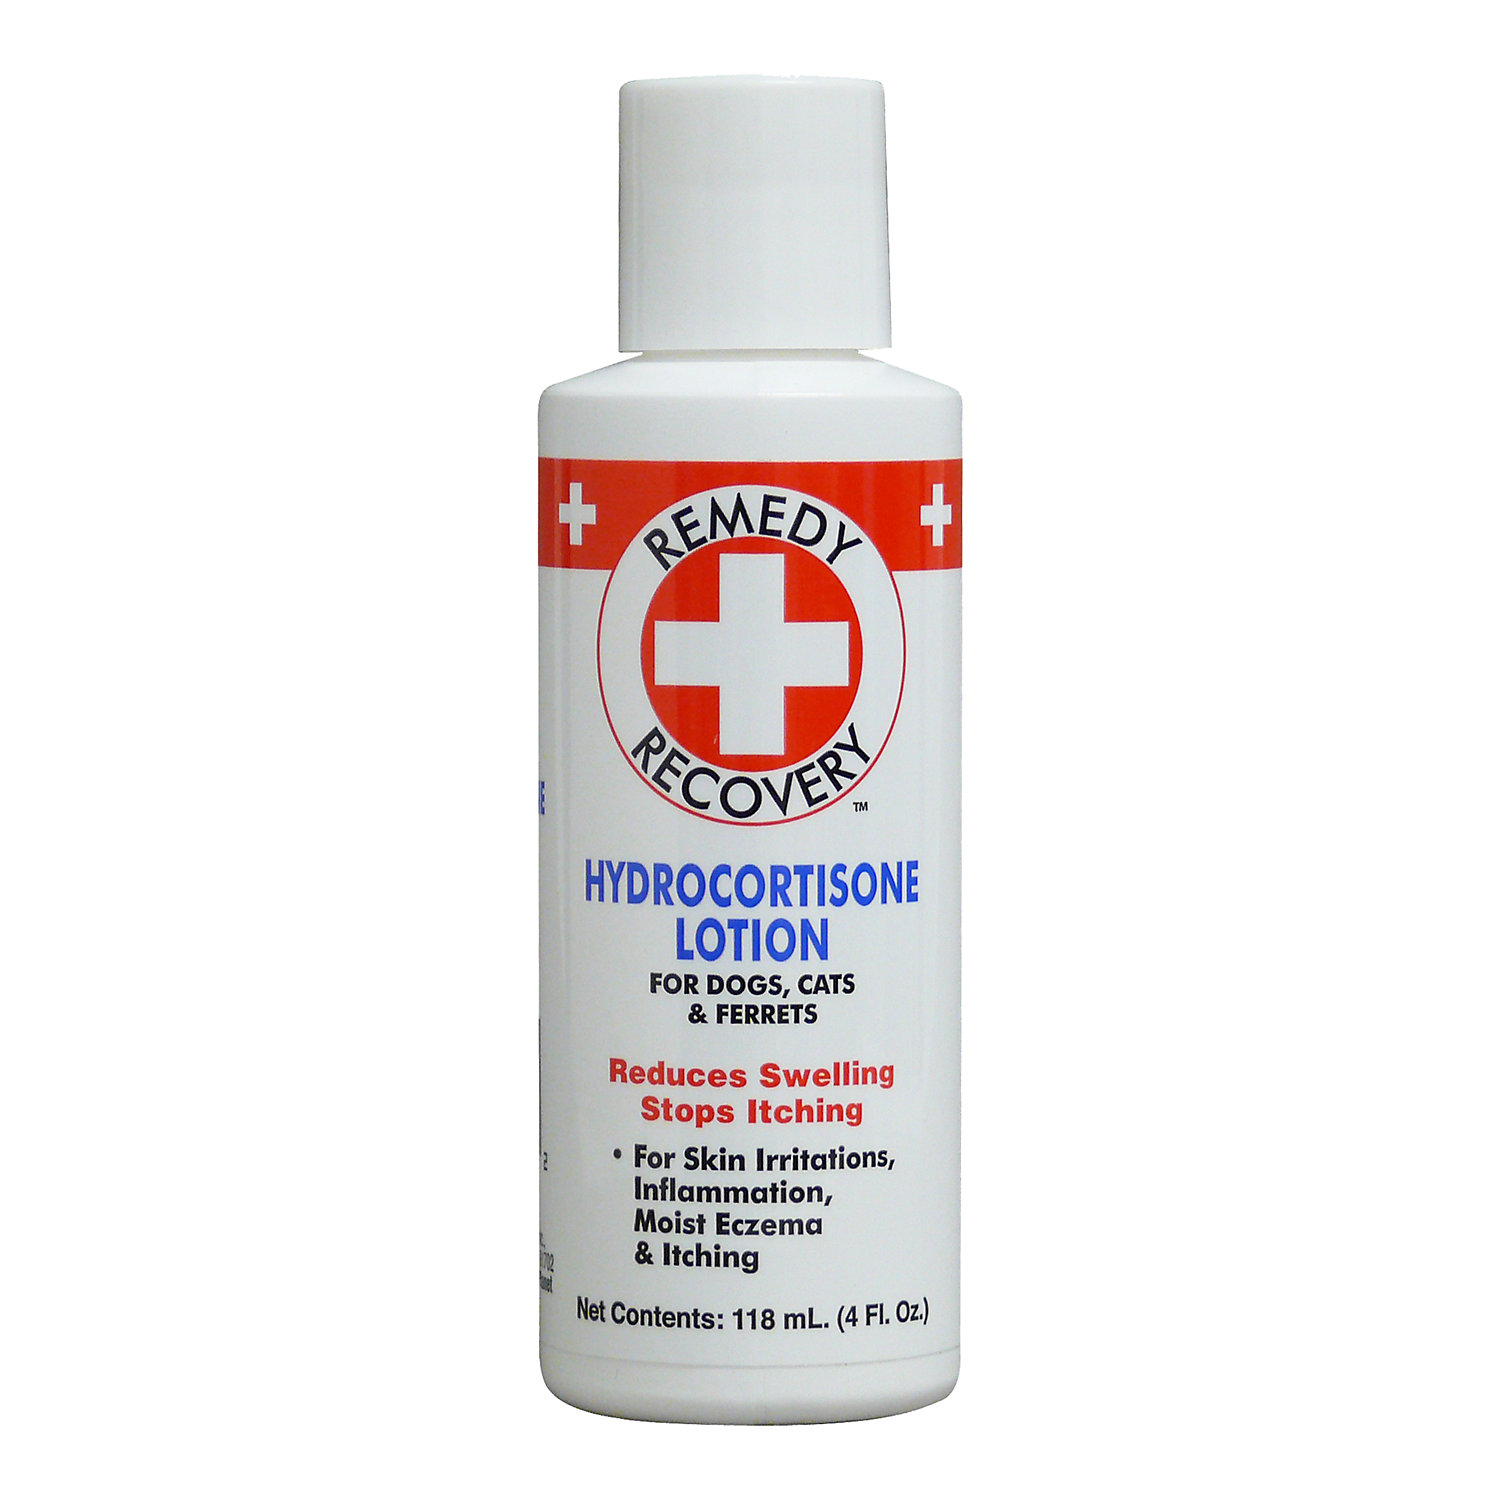 Remedyrecovery Hydrocortisone Lotion .5 4 Fl. Oz.